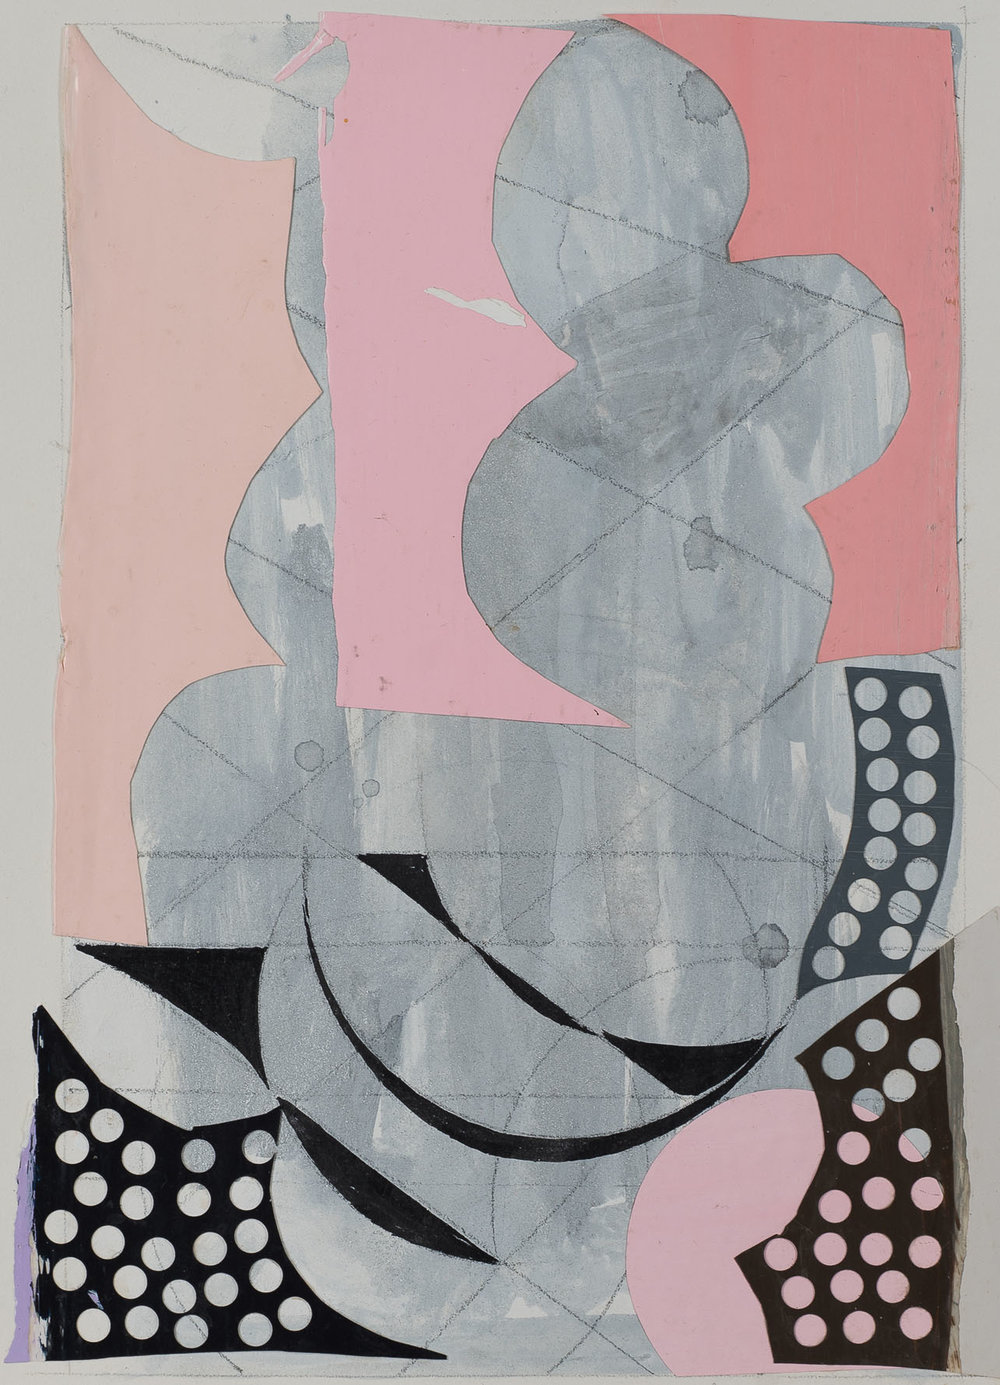 Peter Young,  #44 - 1989 , 1989, Acrylic and collage on paper, 15 x 11 1/2 inches (38.1 x 29.2 cm)